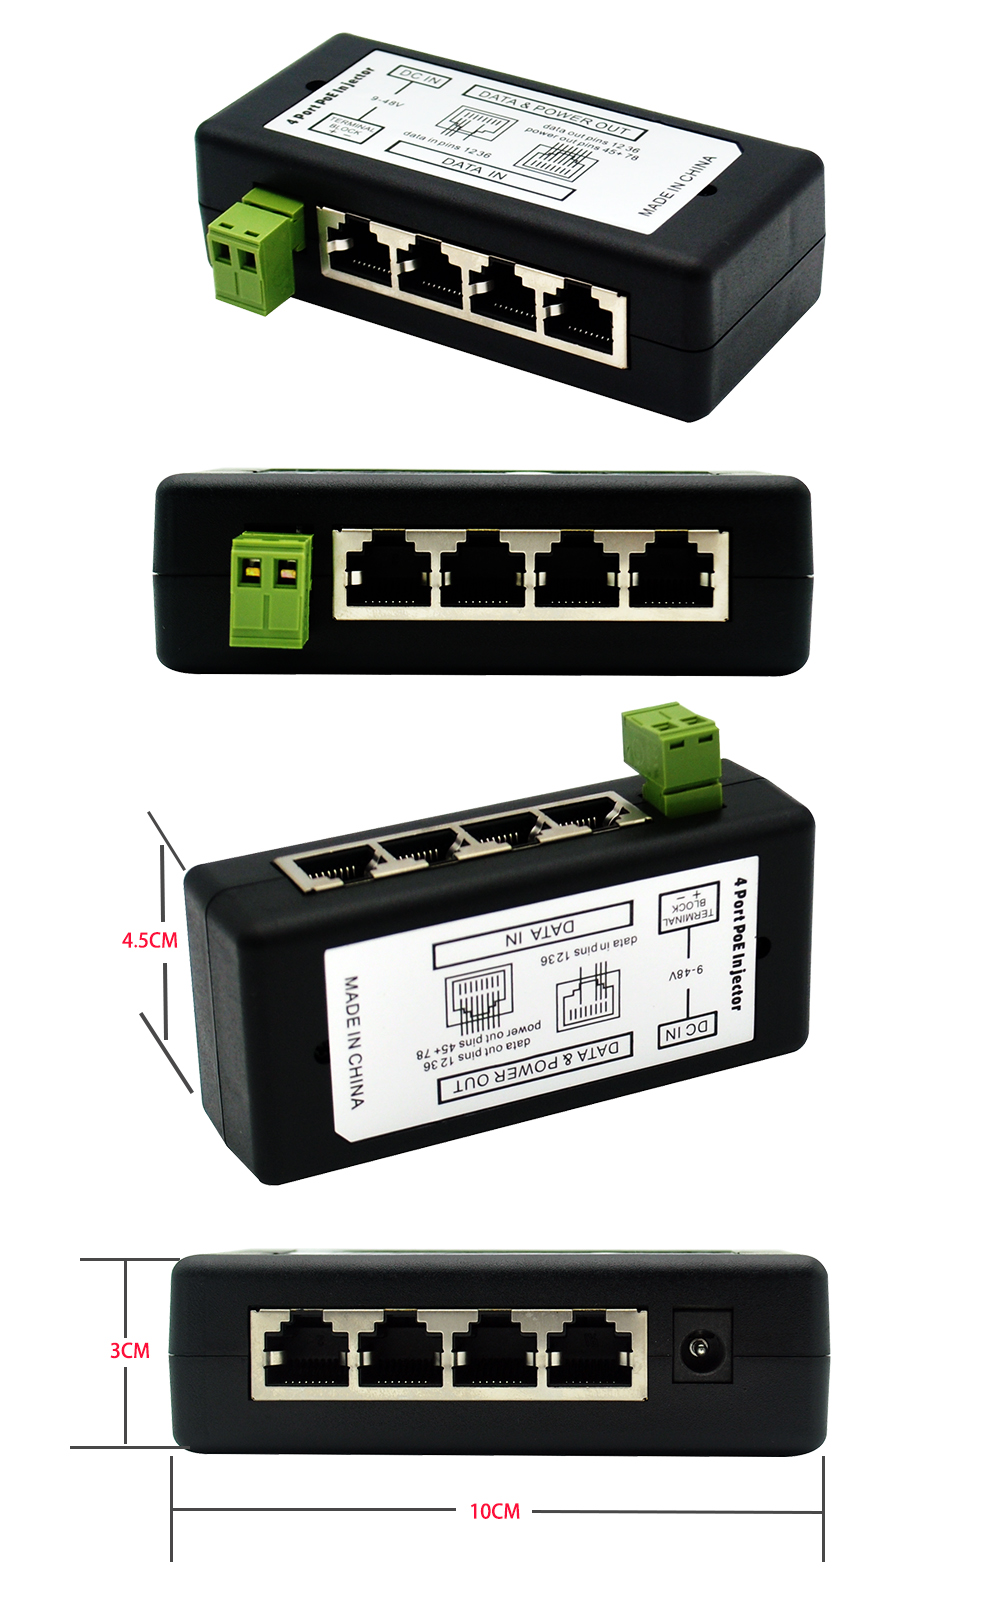 Autoeye New Arrival  4Ports 8 Ports POE Injector POE Splitter for CCTV Network POE Camera Power Over Ethernet IEEE802.3af